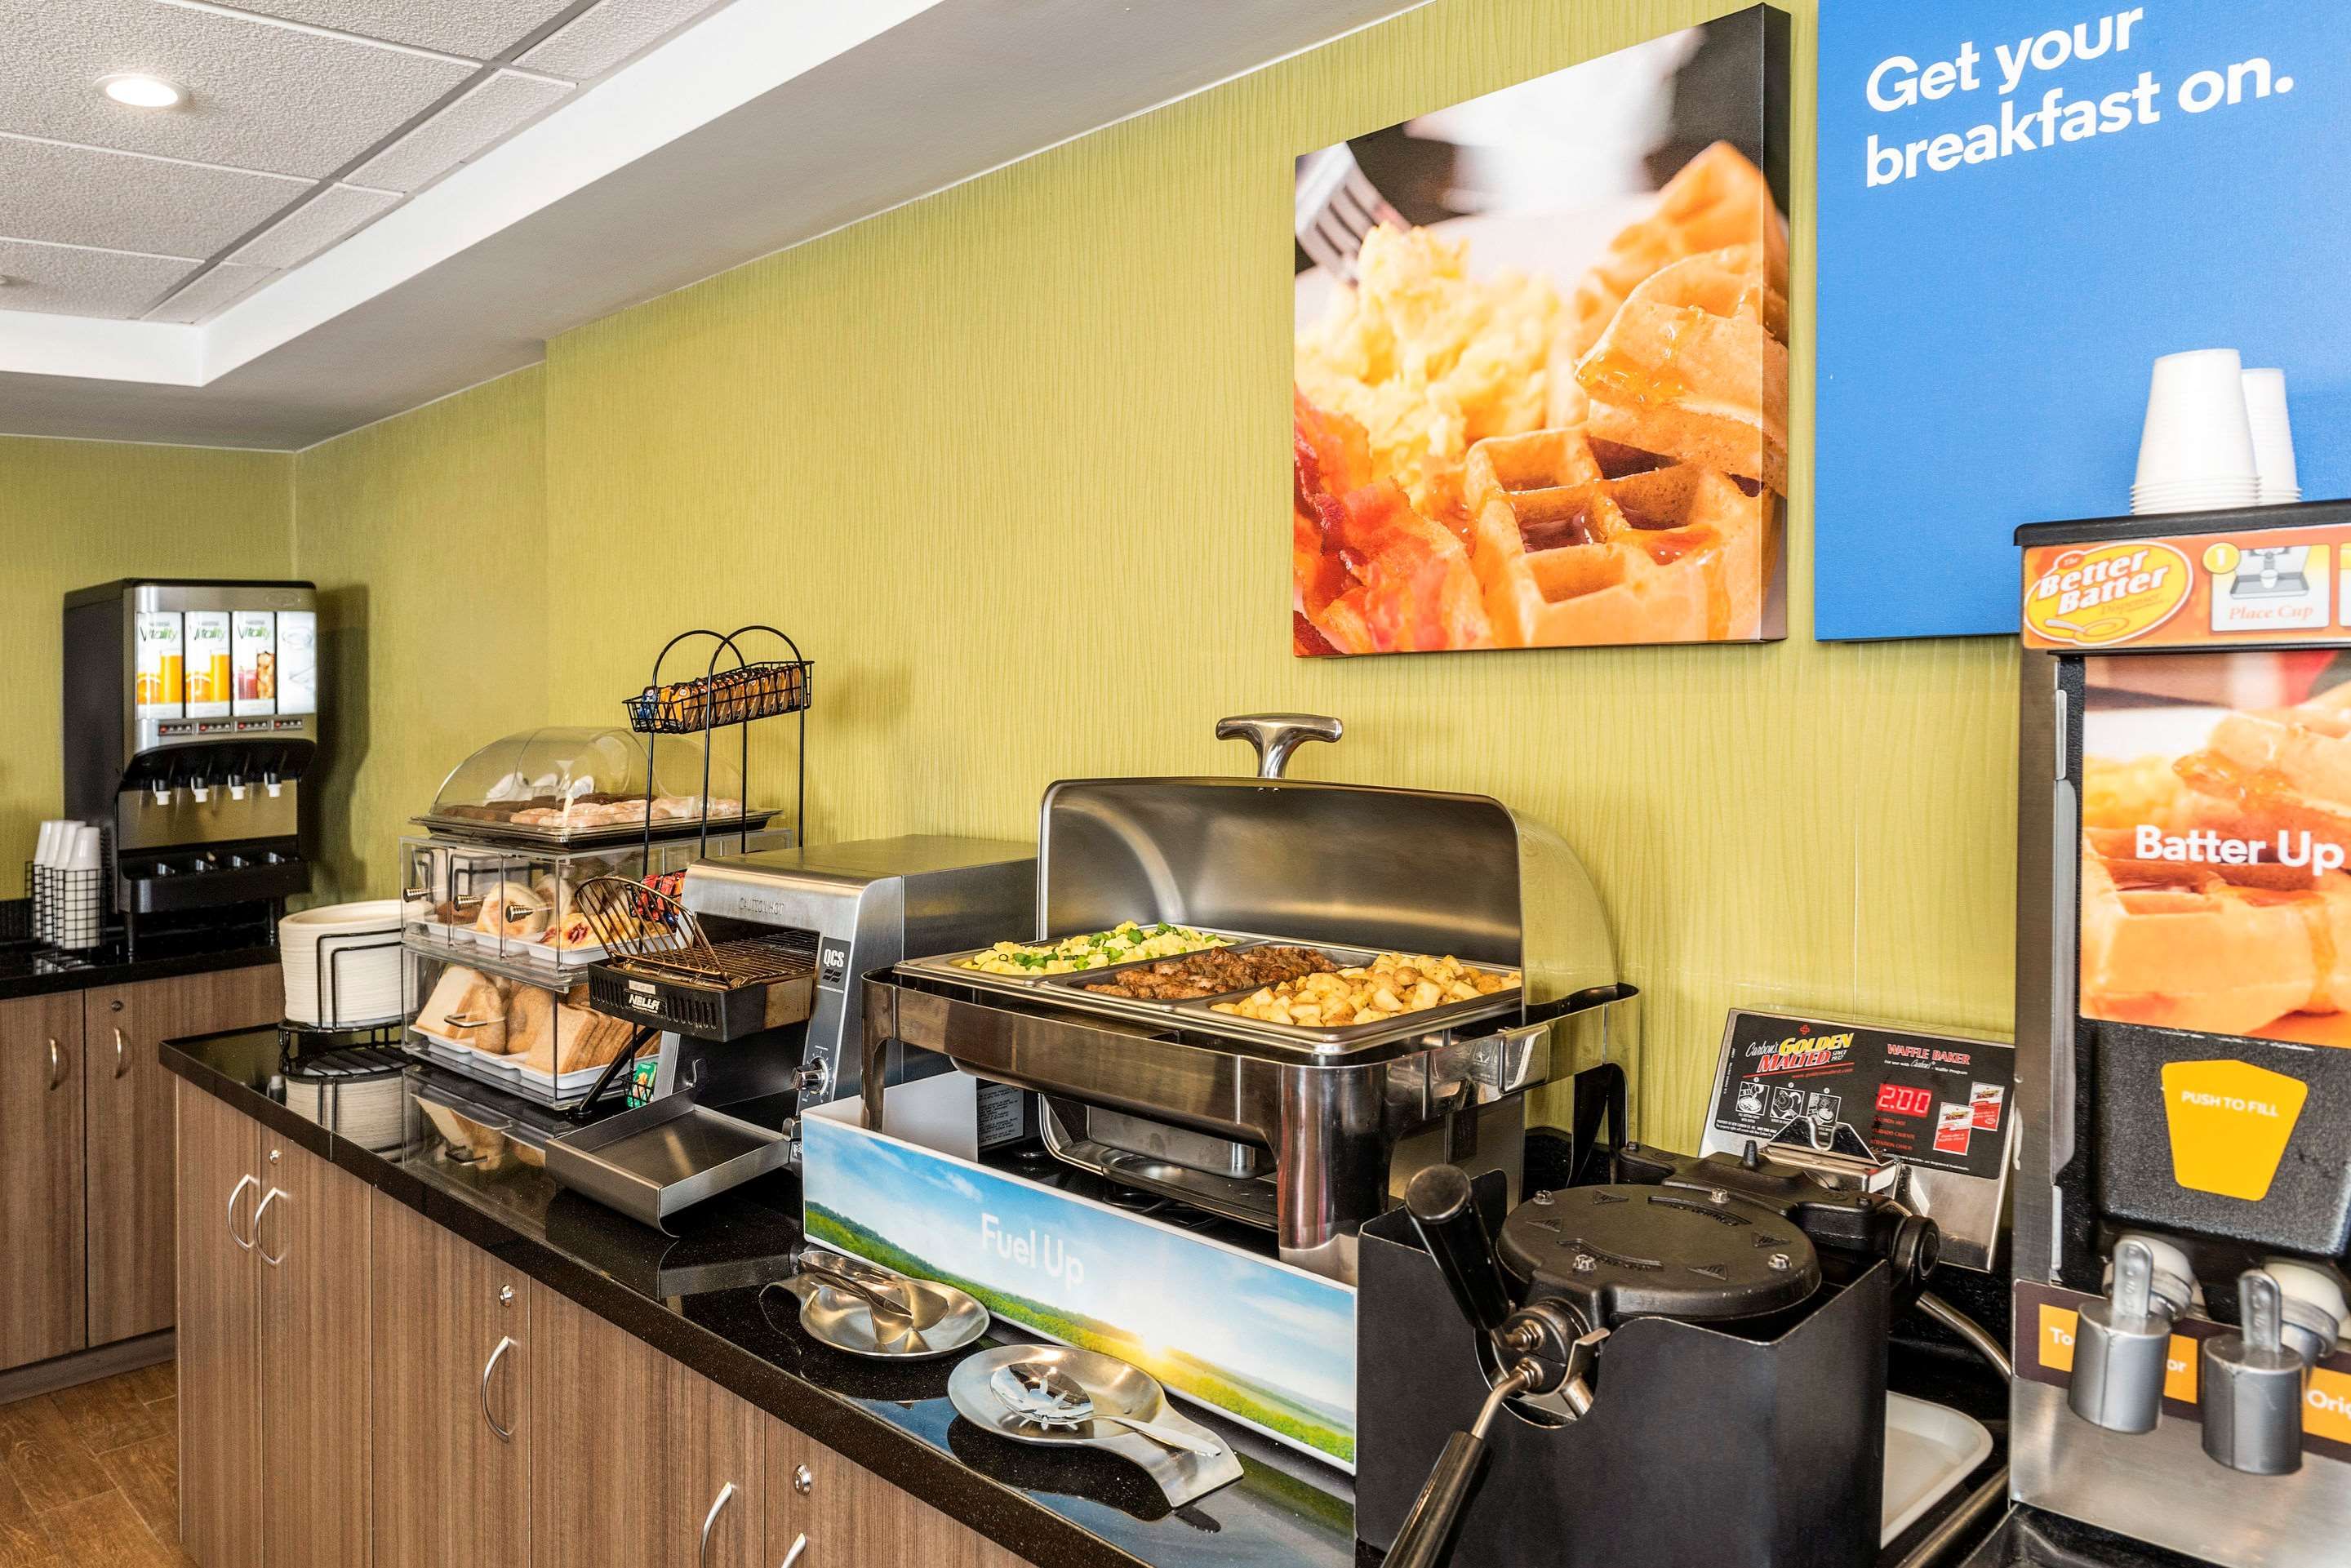 Comfort Inn in Saskatoon: Great Selection of Breakfast Options